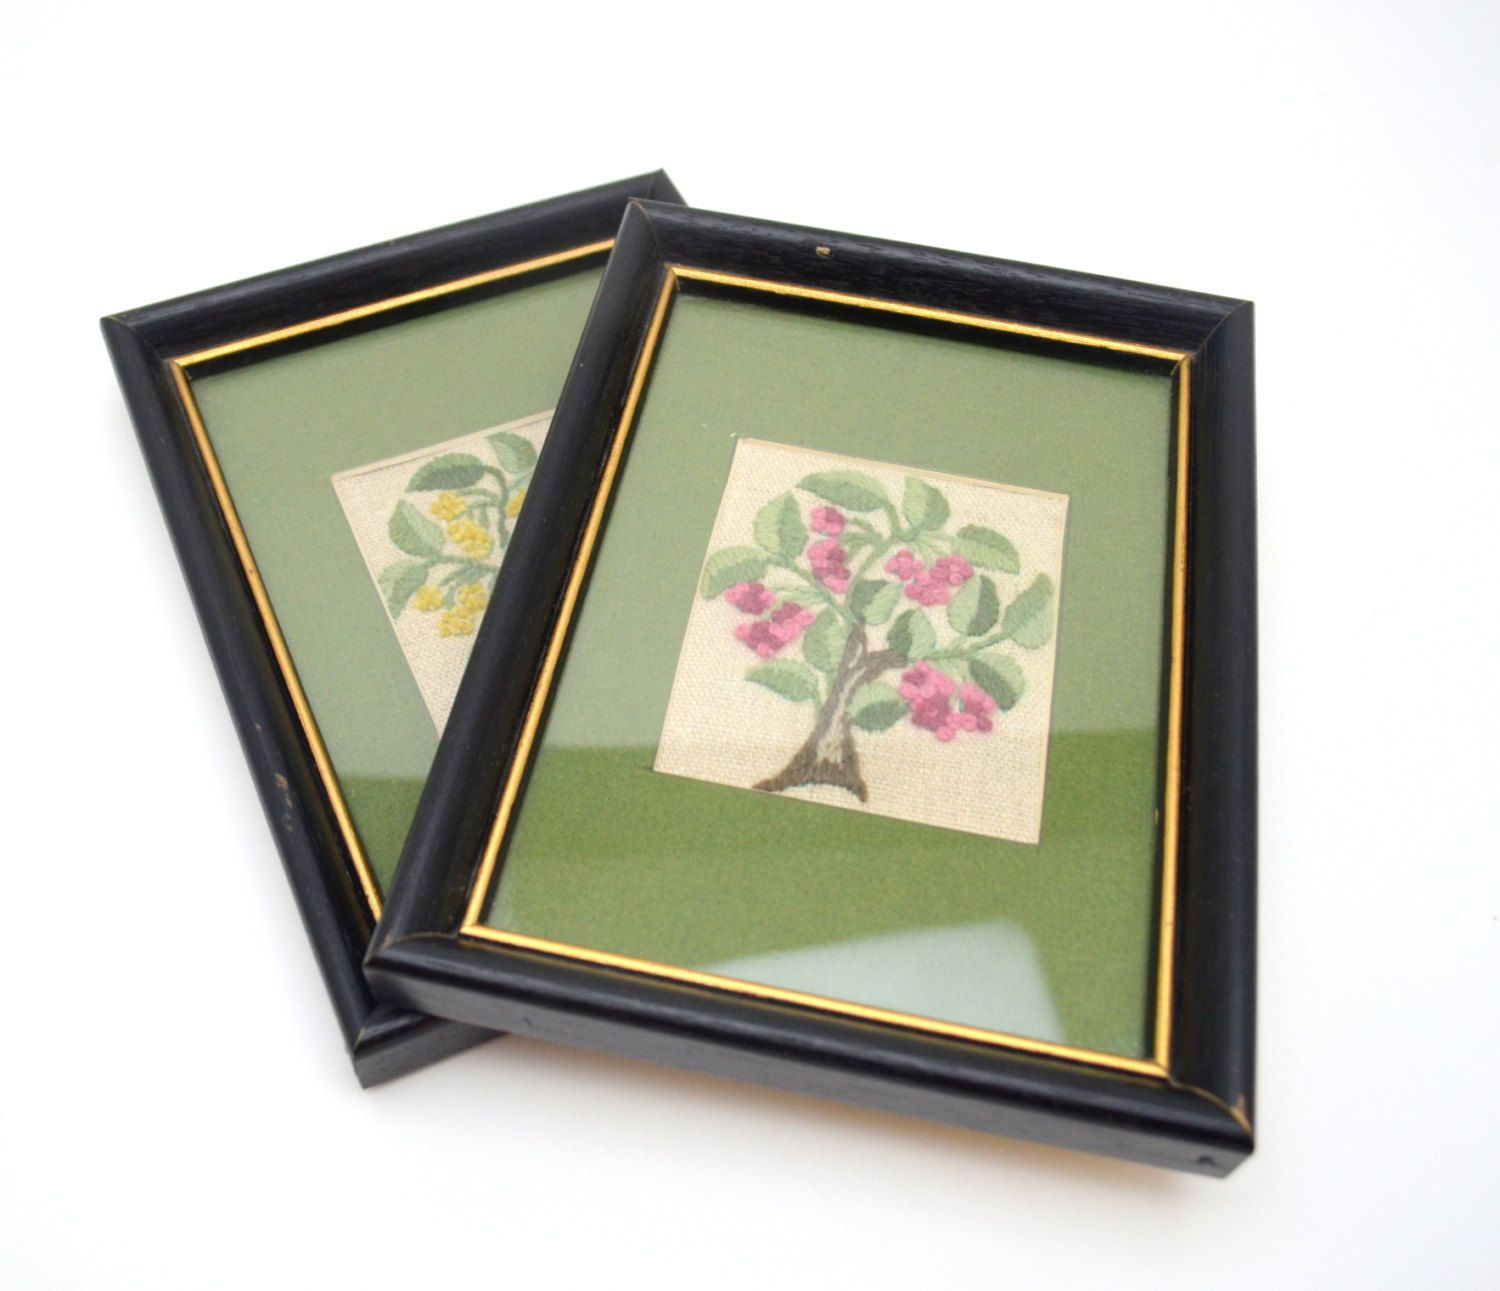 Pair of Vintage Needlepoint Framed Pictures, Green Trees with Pink and Yellow Flowers, Crewel Wall Hanging, 1960s-1970s by UpswingVintage on Etsy